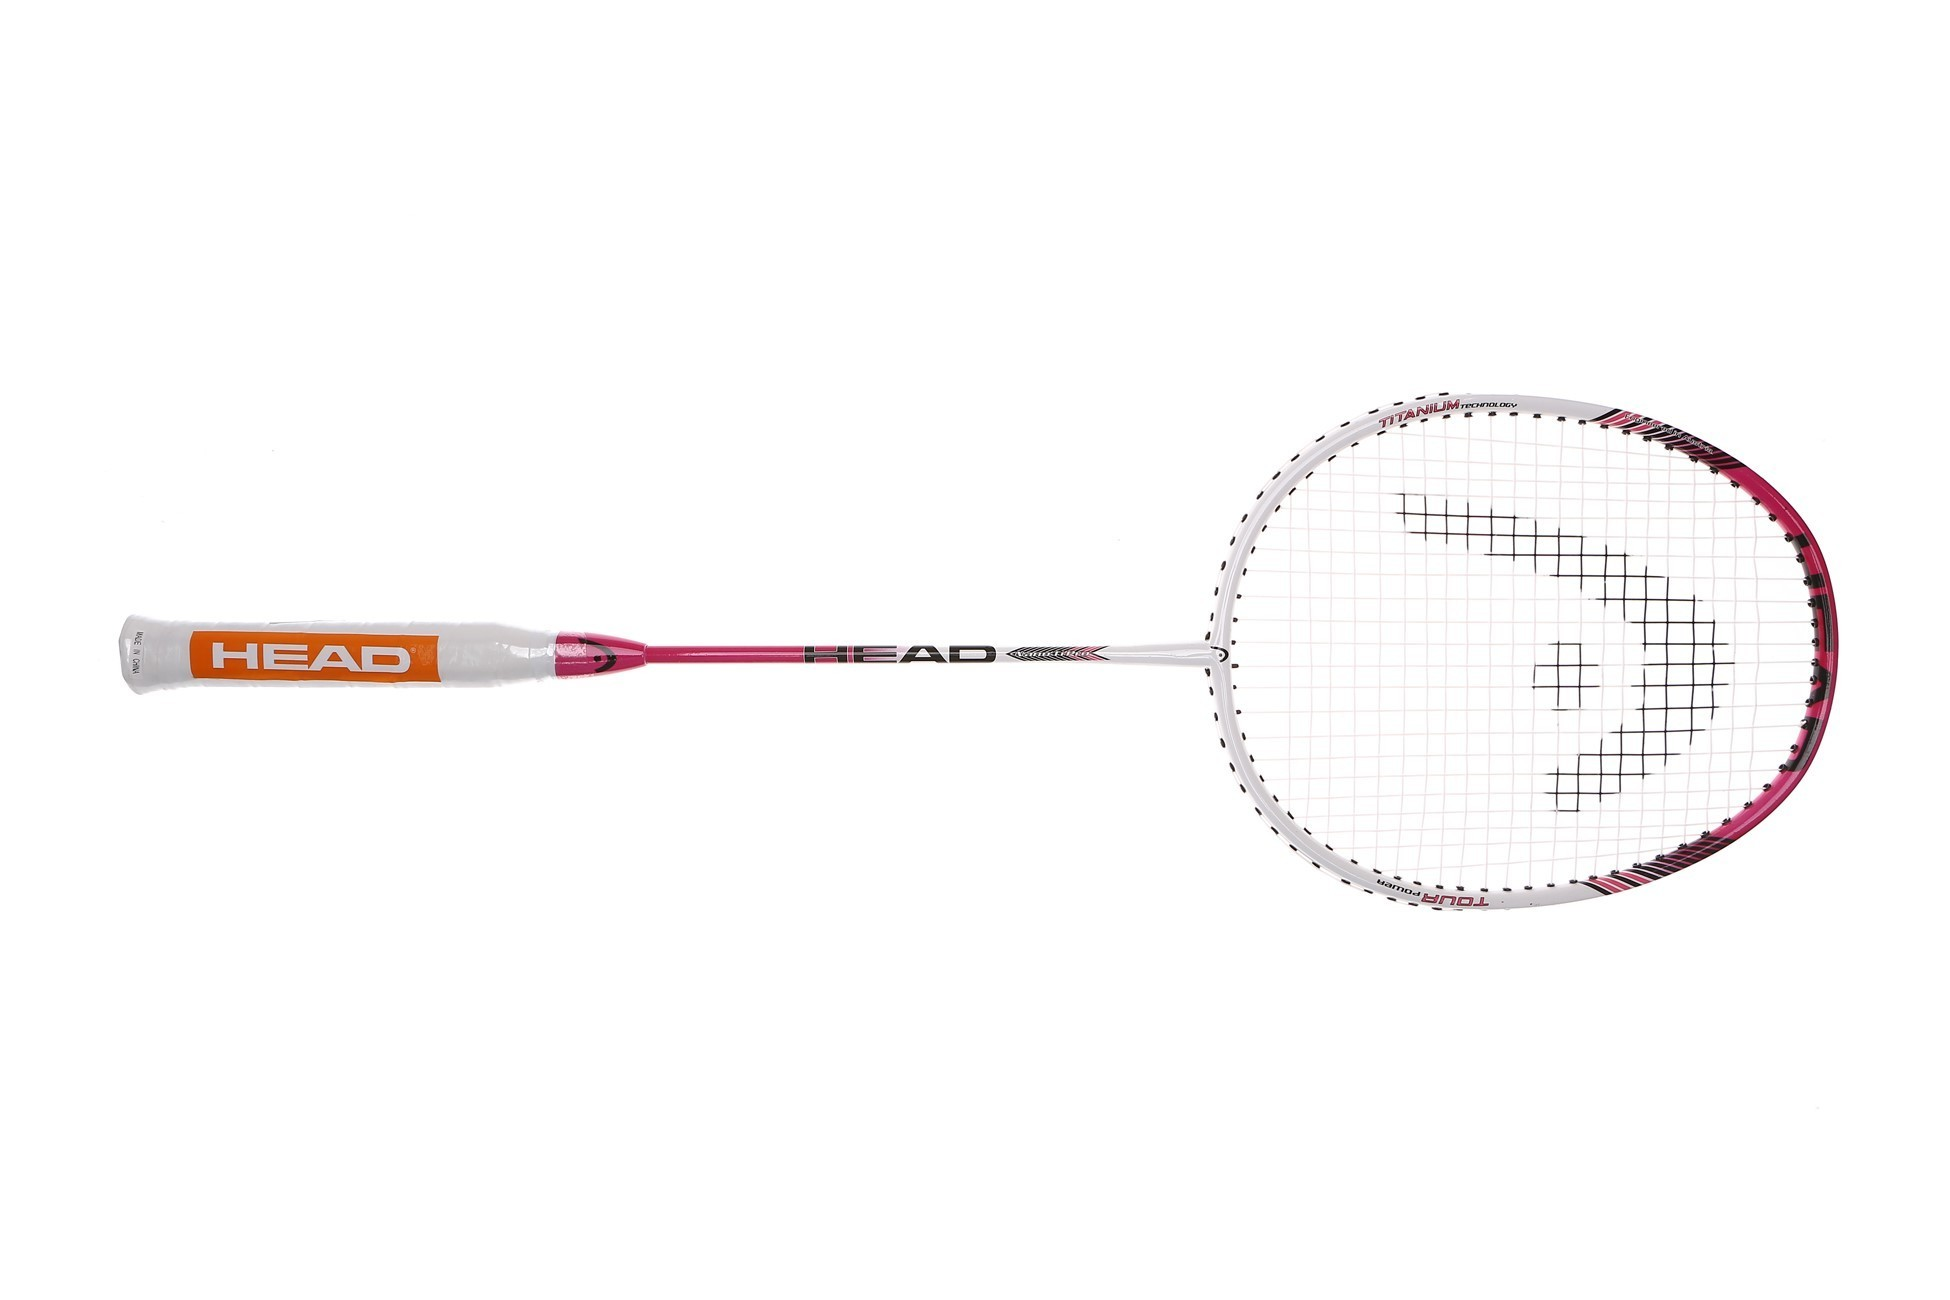 Head Nano Ti Pro Badminton Racket